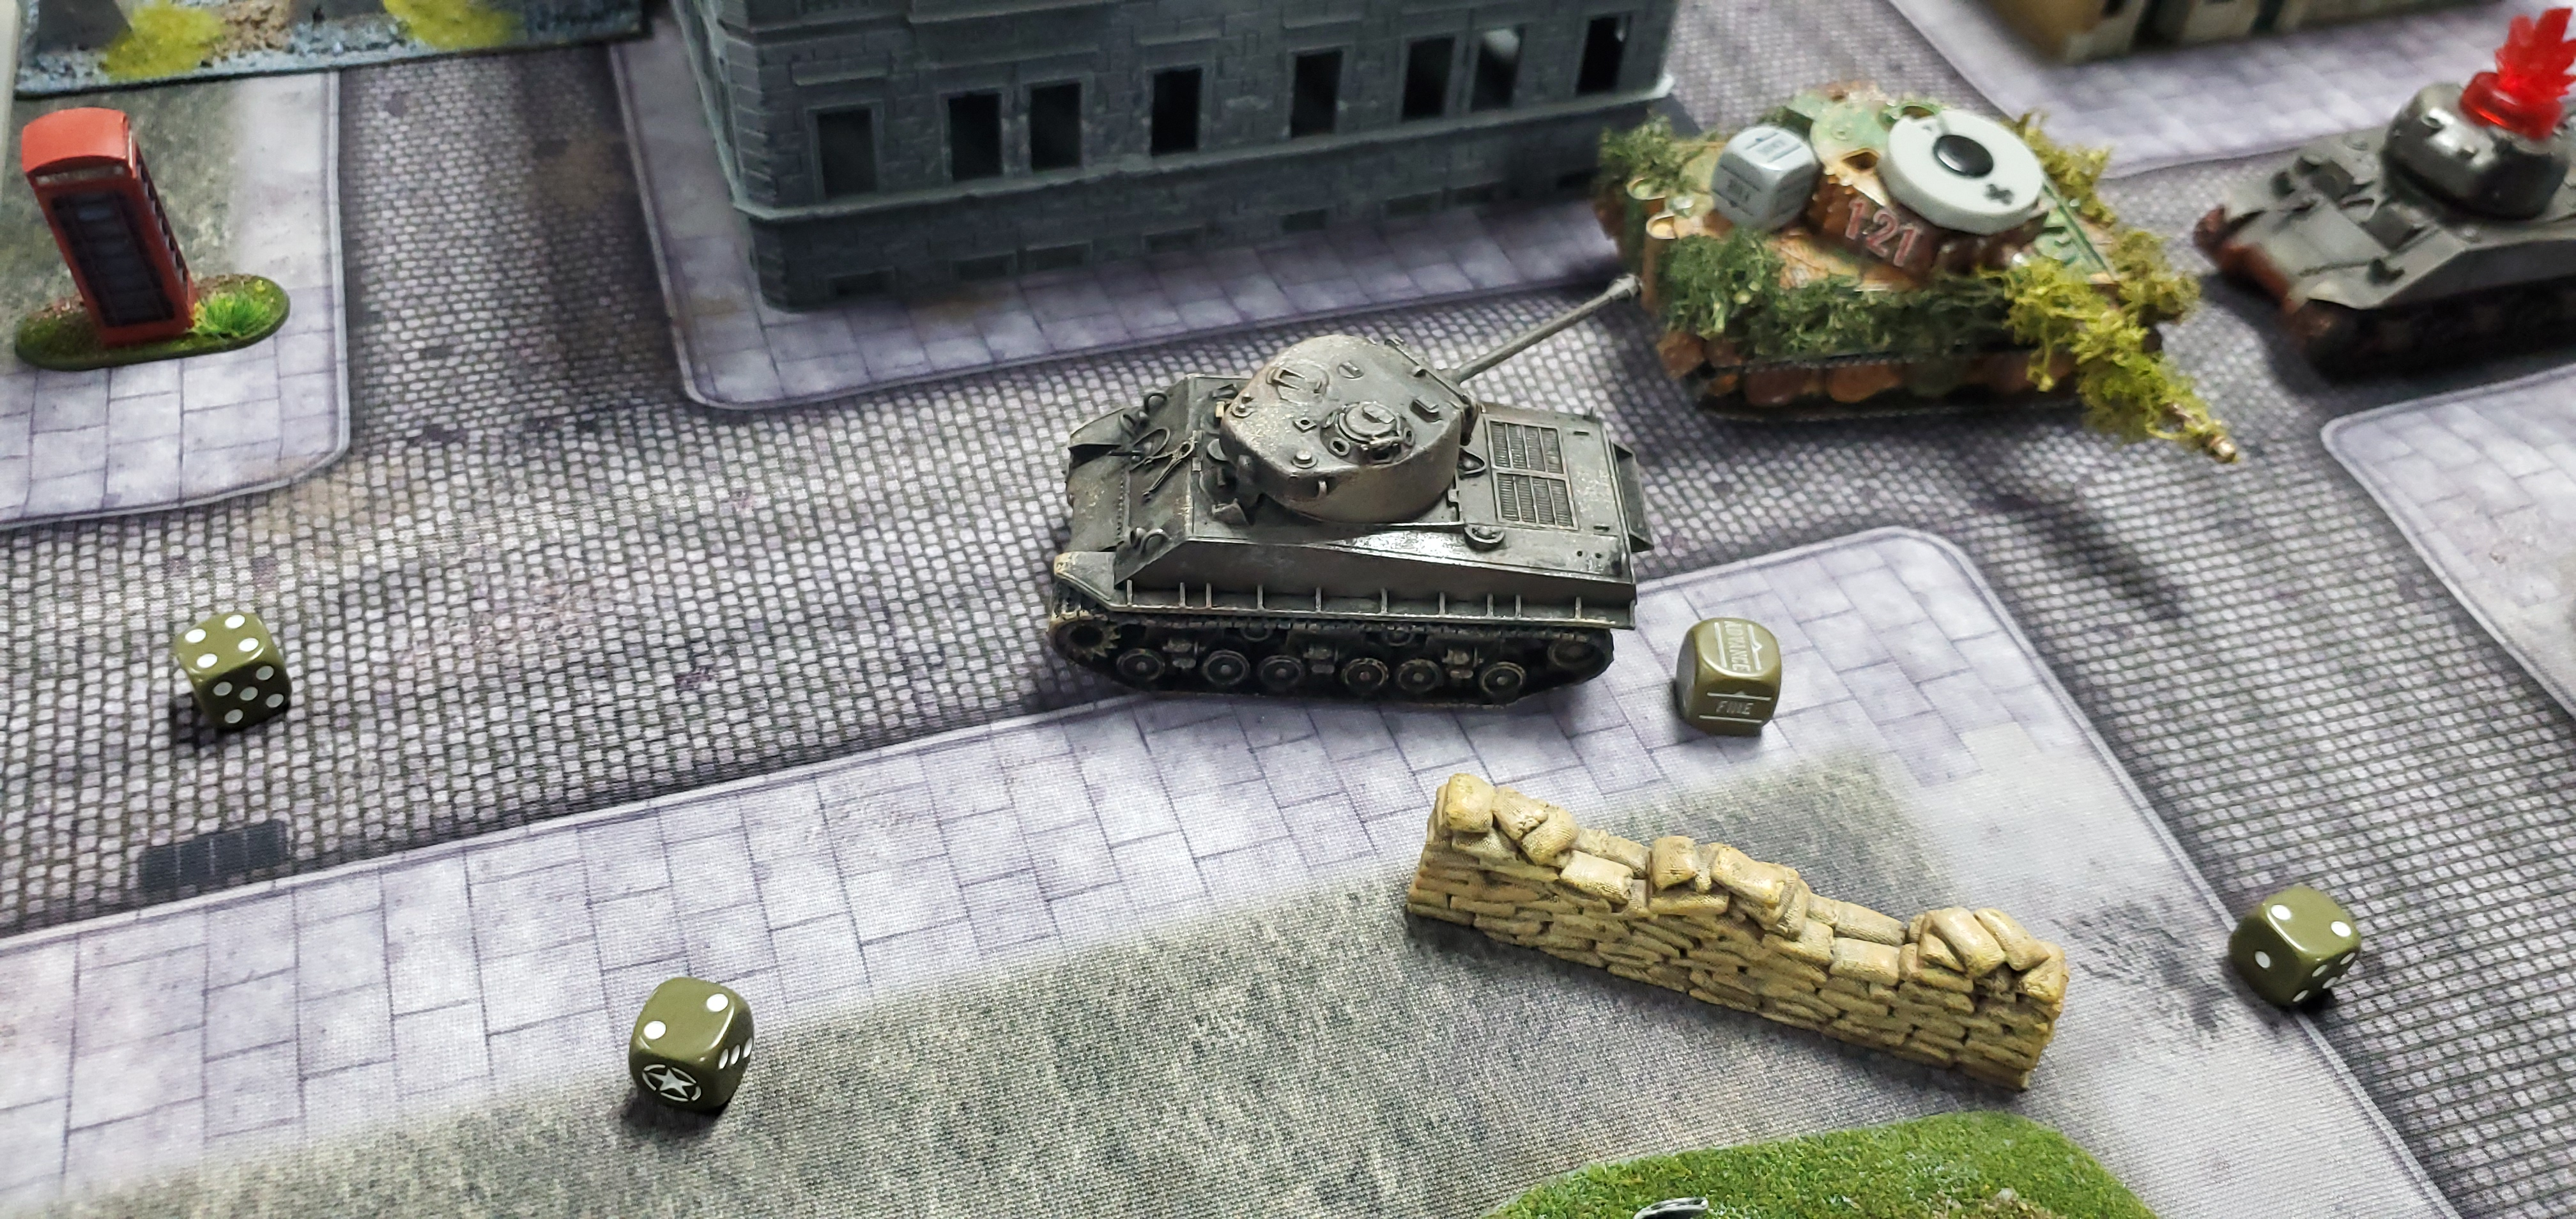 1st SS Panzer Division Leibstandarte SS Adolf Hitler versus Company B in an armoured engagement